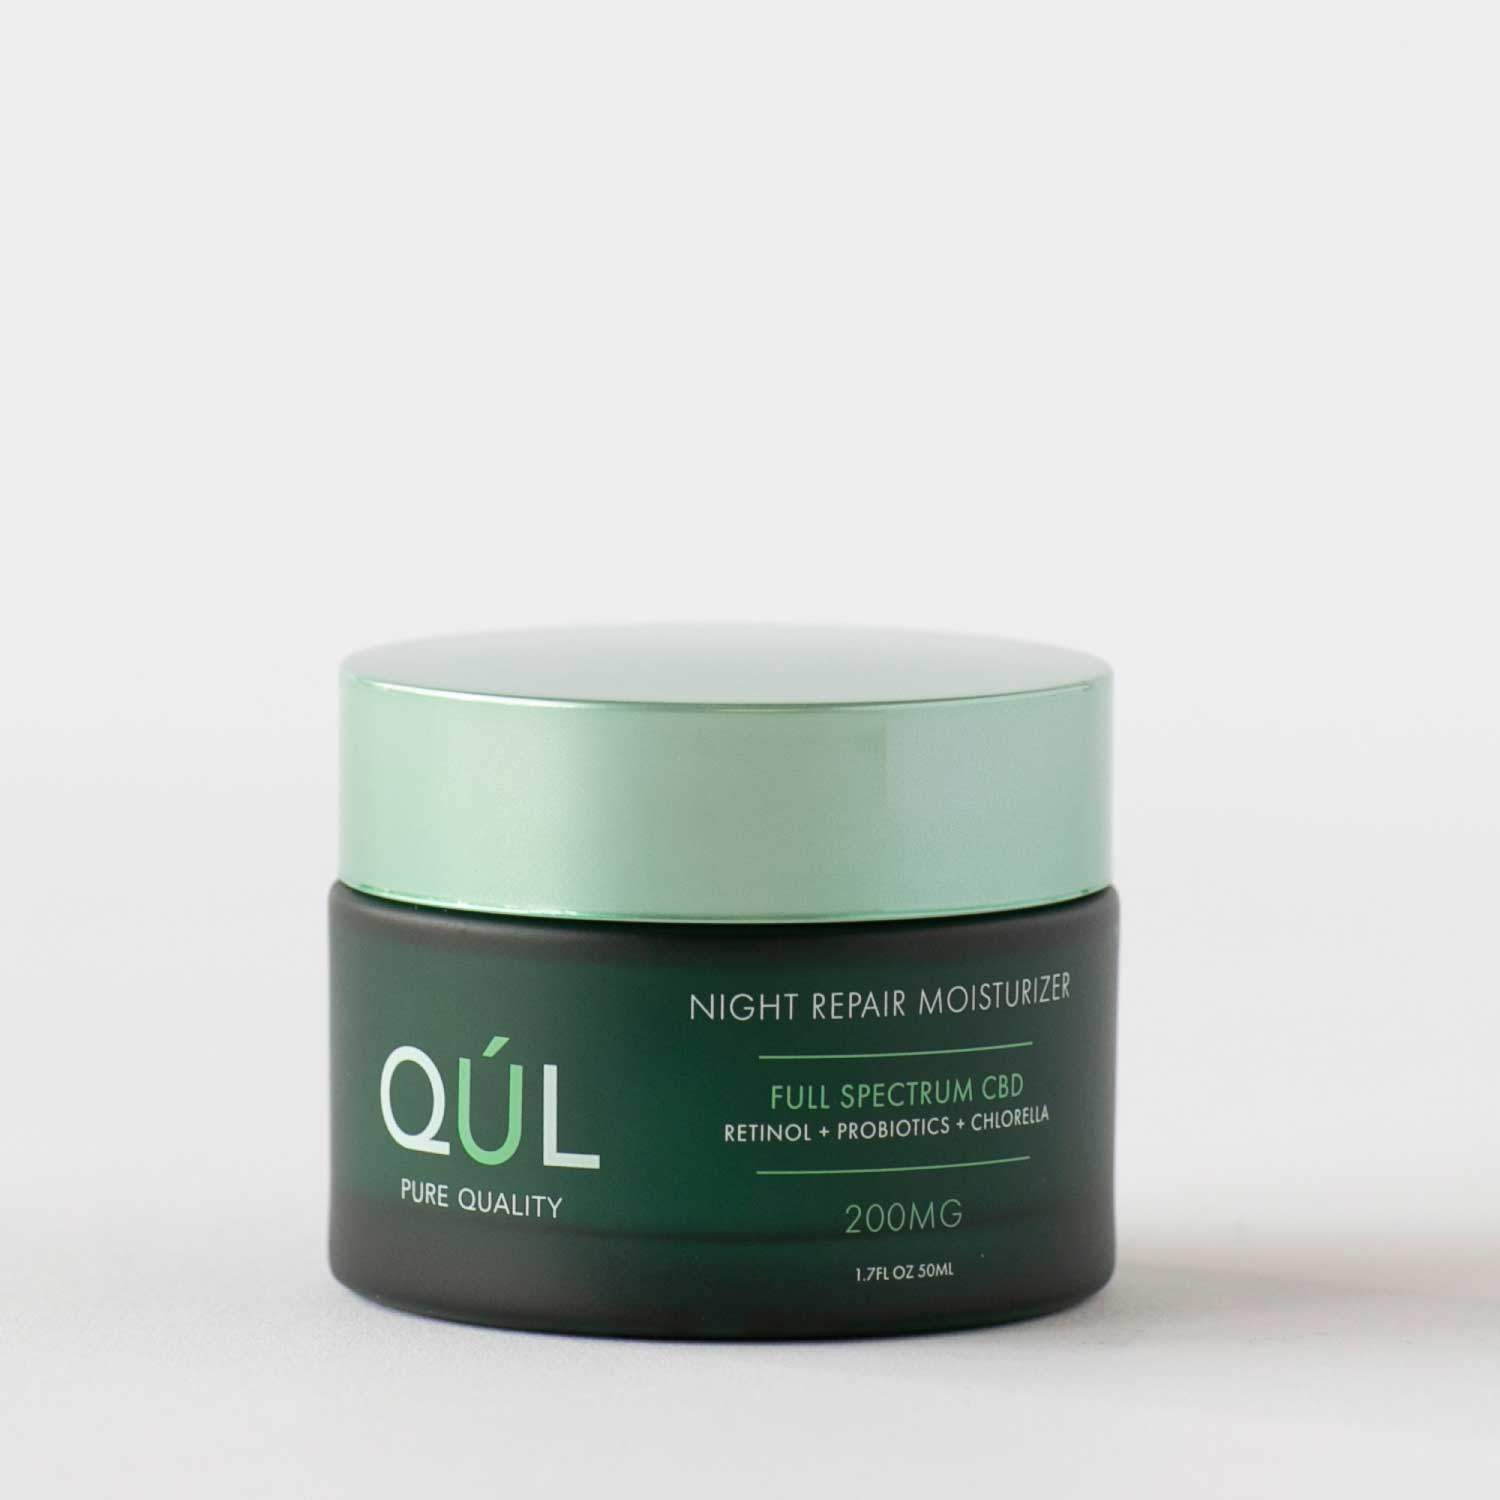 Night Repair Moisturizer